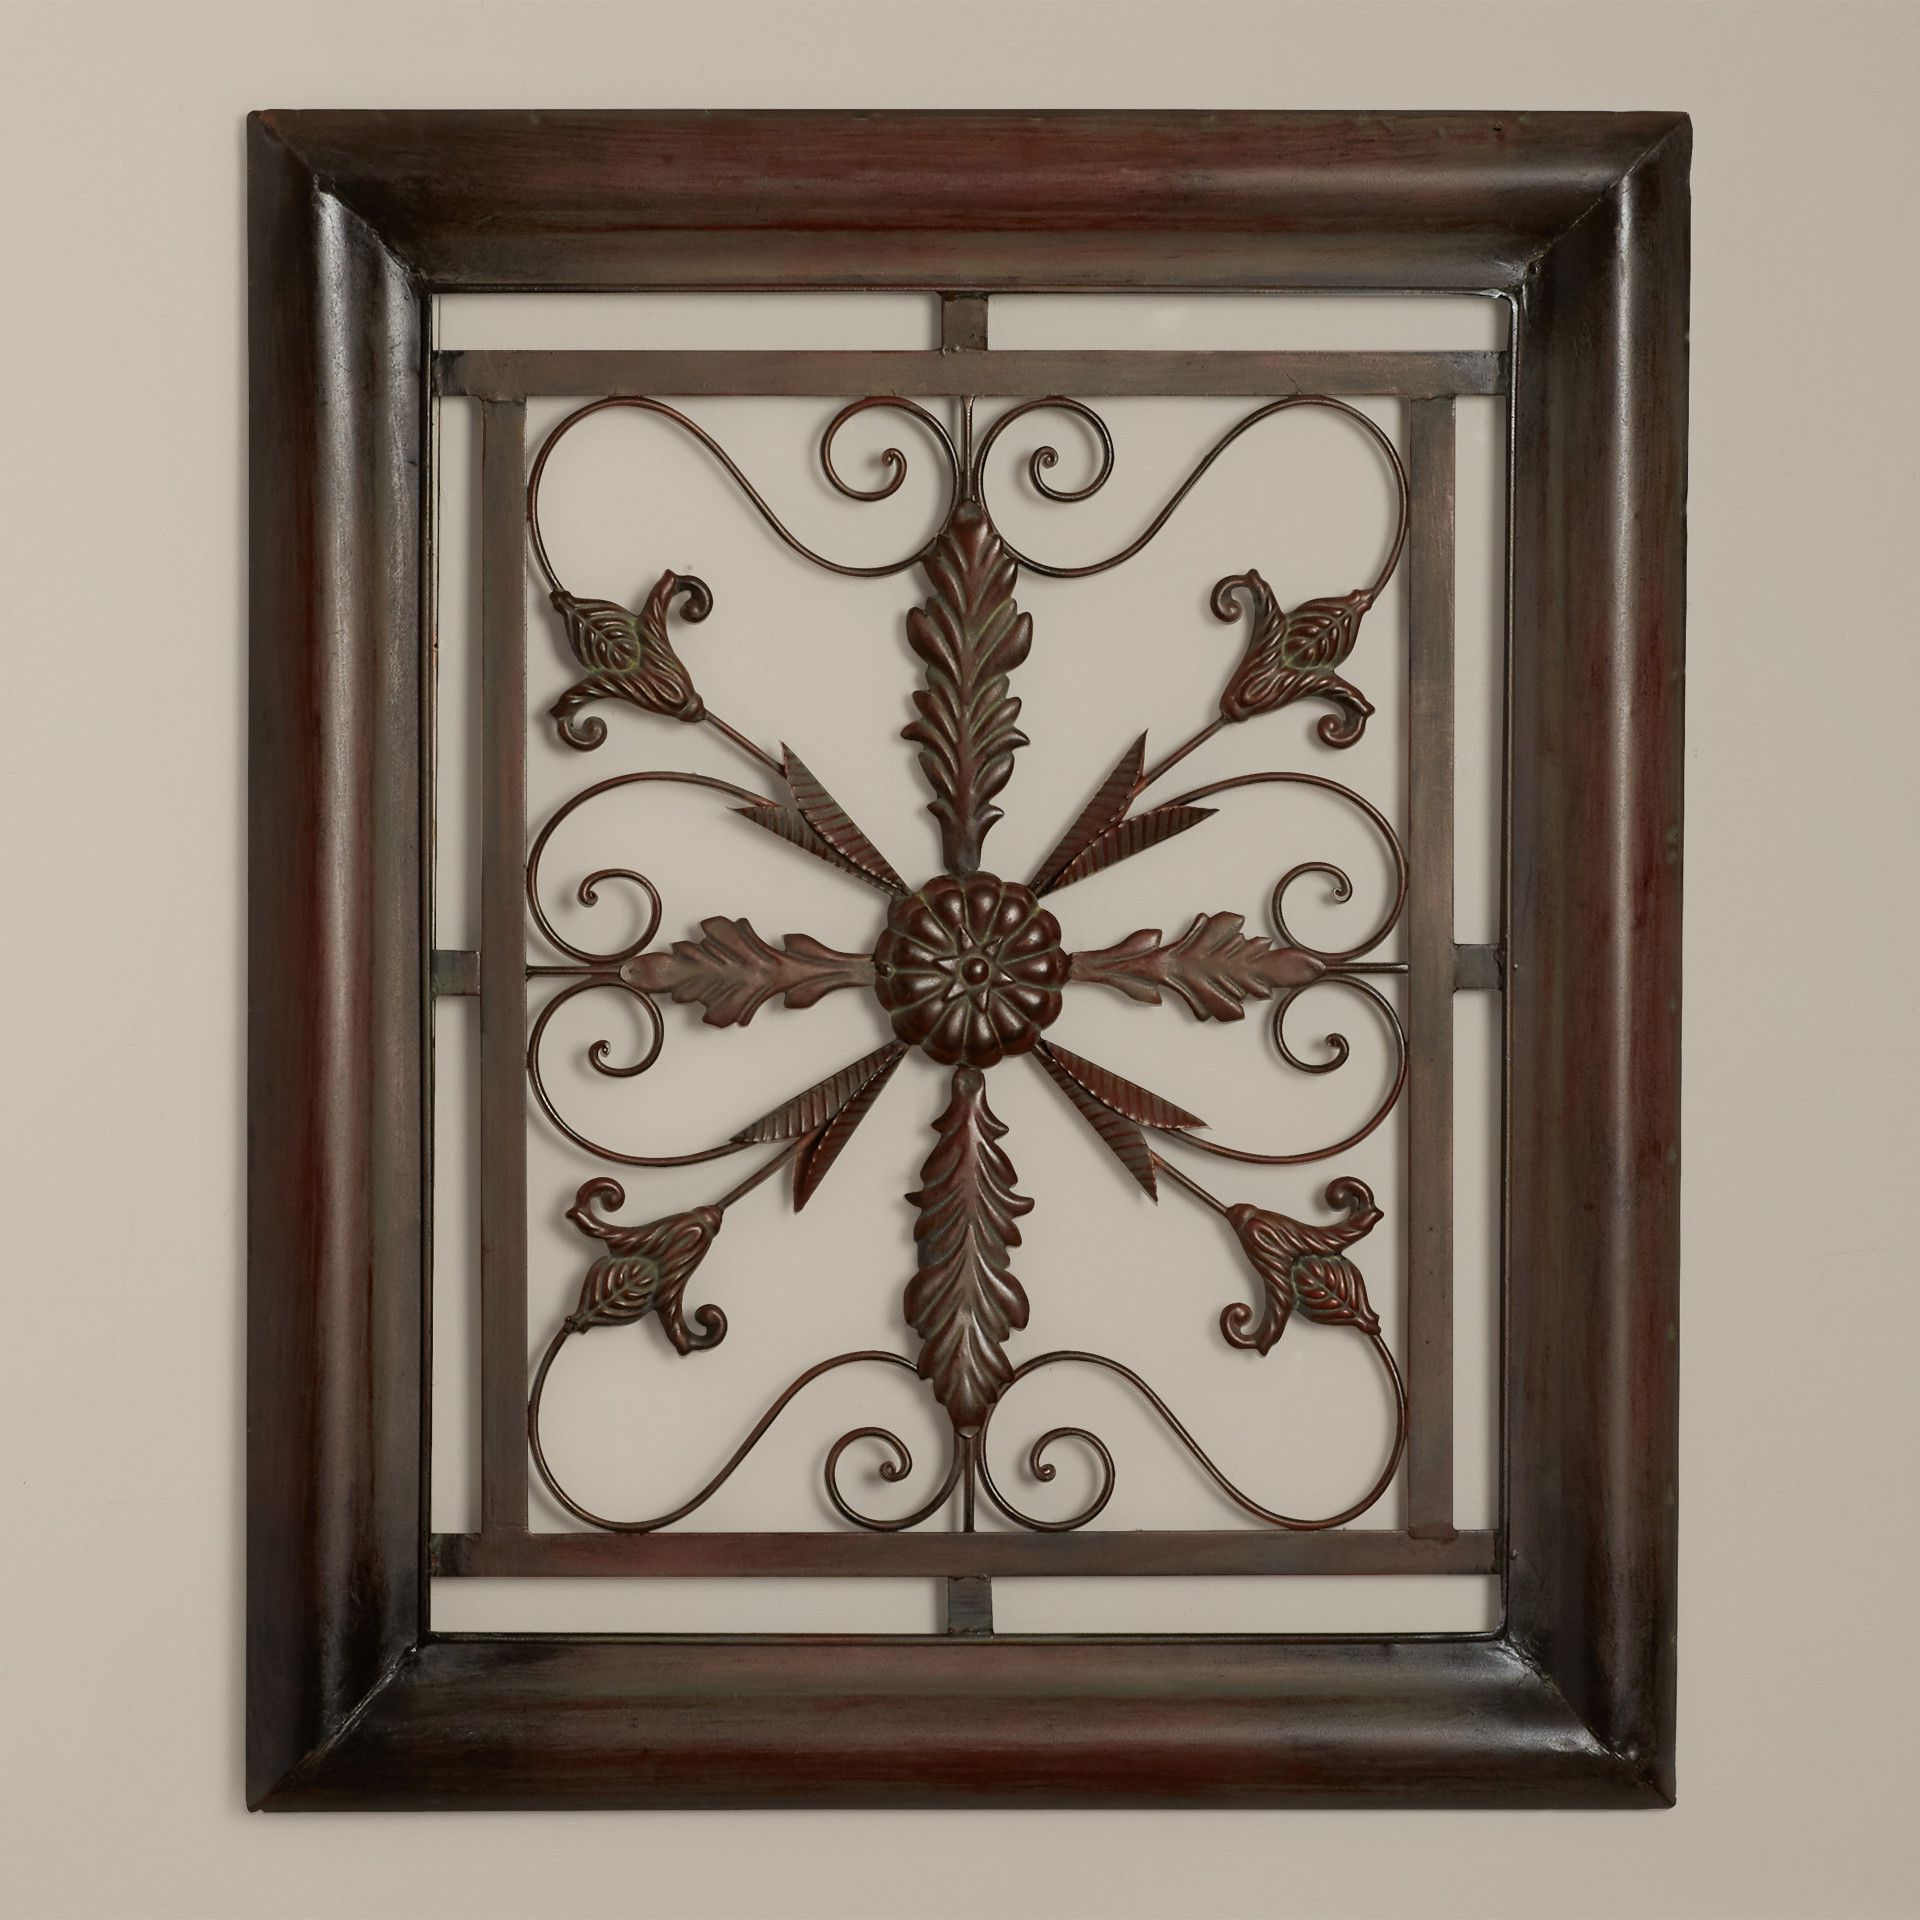 2020 Wall Decor By Charlton Home Within Charlton Home® Bayliss Square Scroll Wall Decor (View 2 of 20)